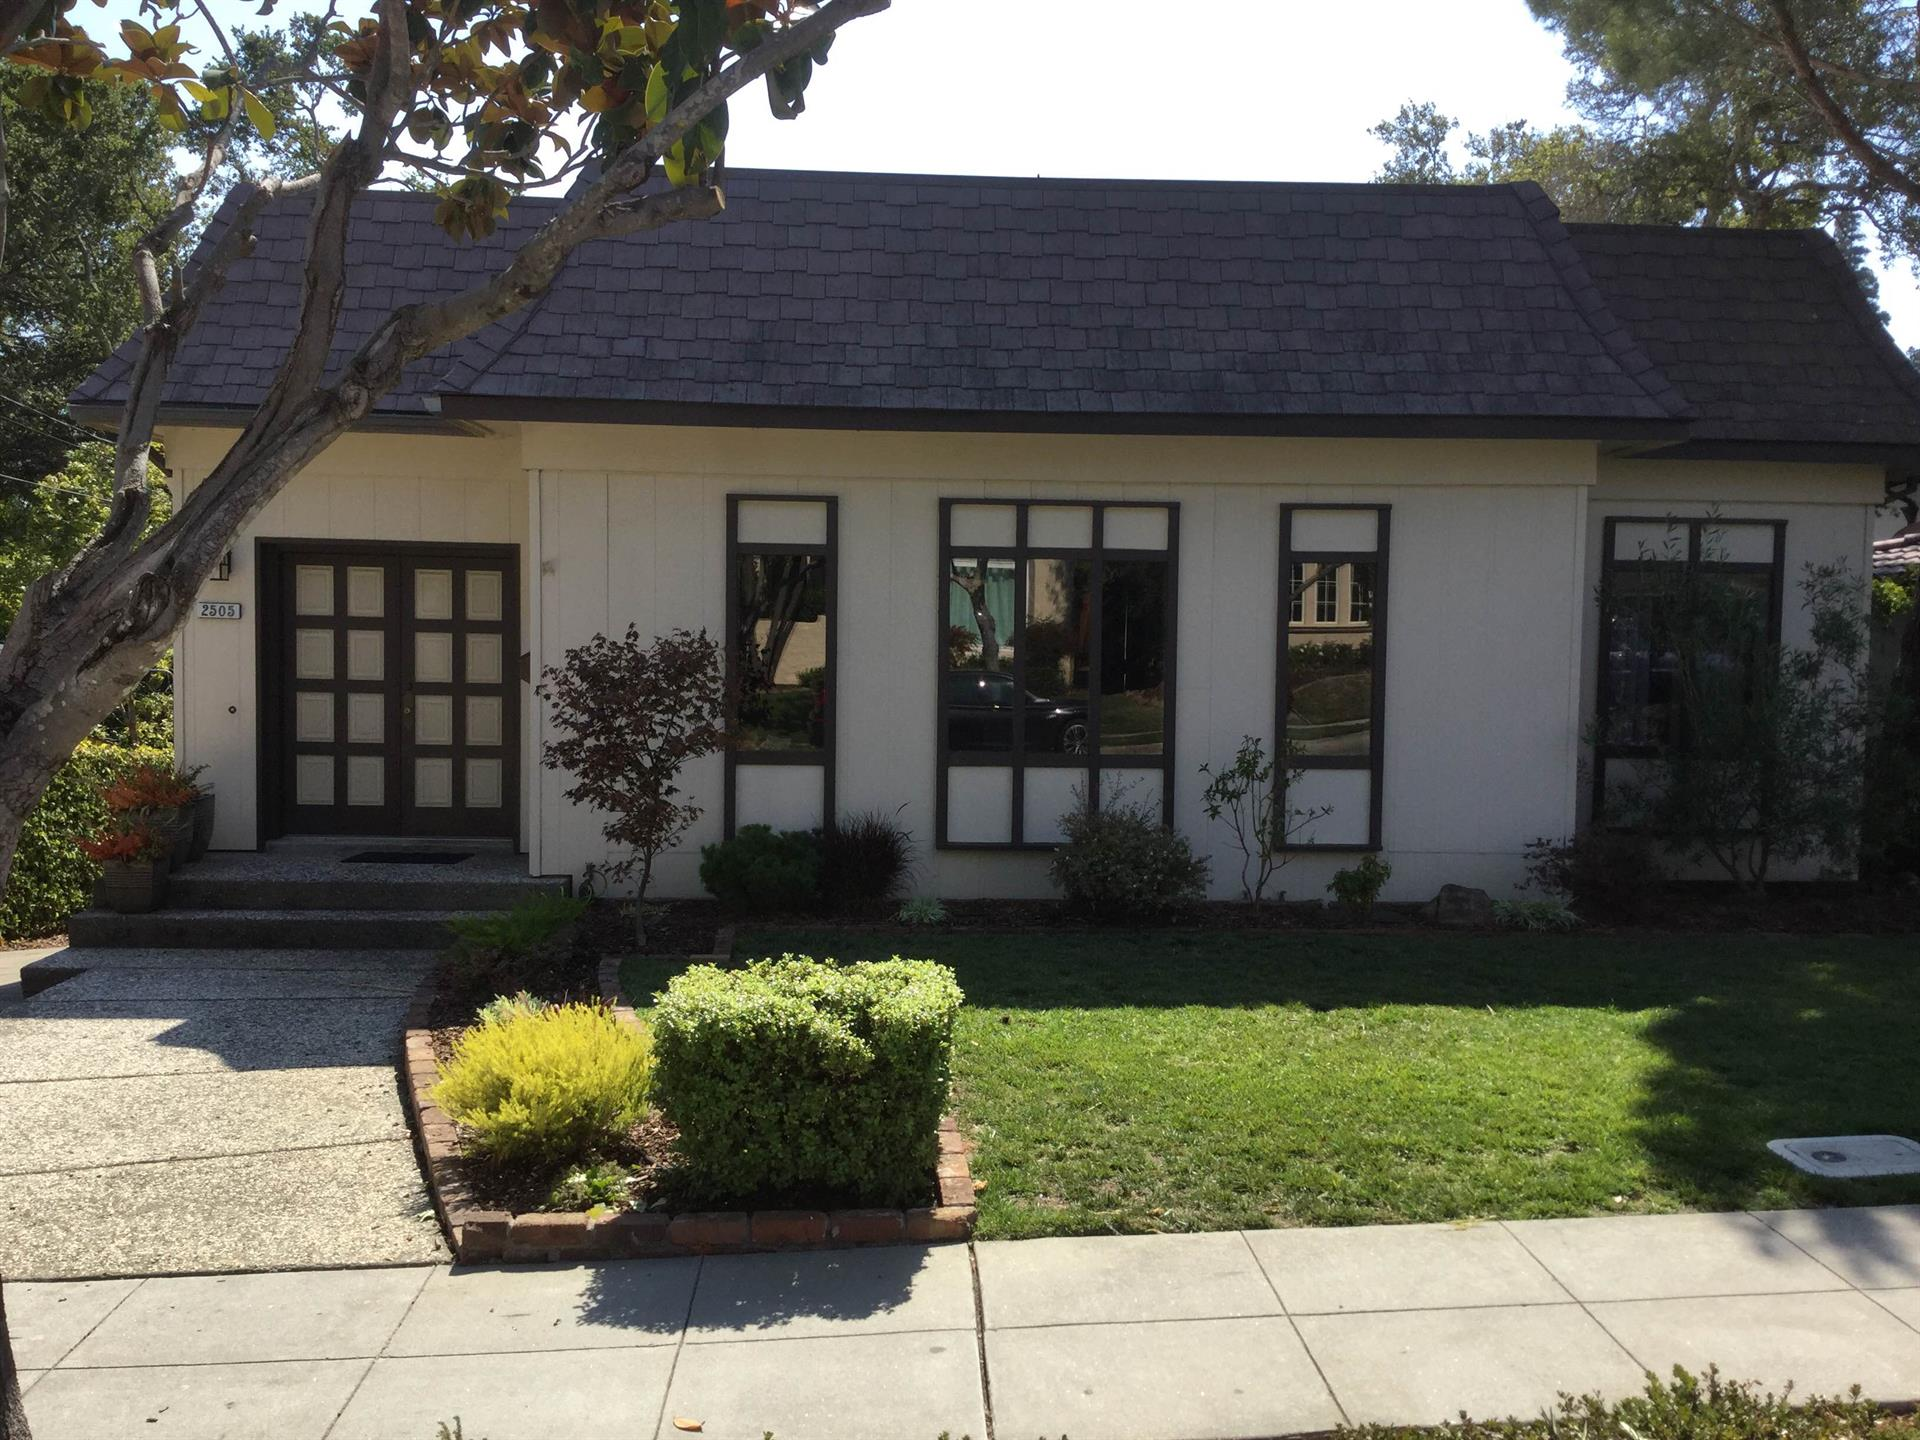 Additional photo for property listing at 2505 Easton Dr  Burlingame, California 94010 United States